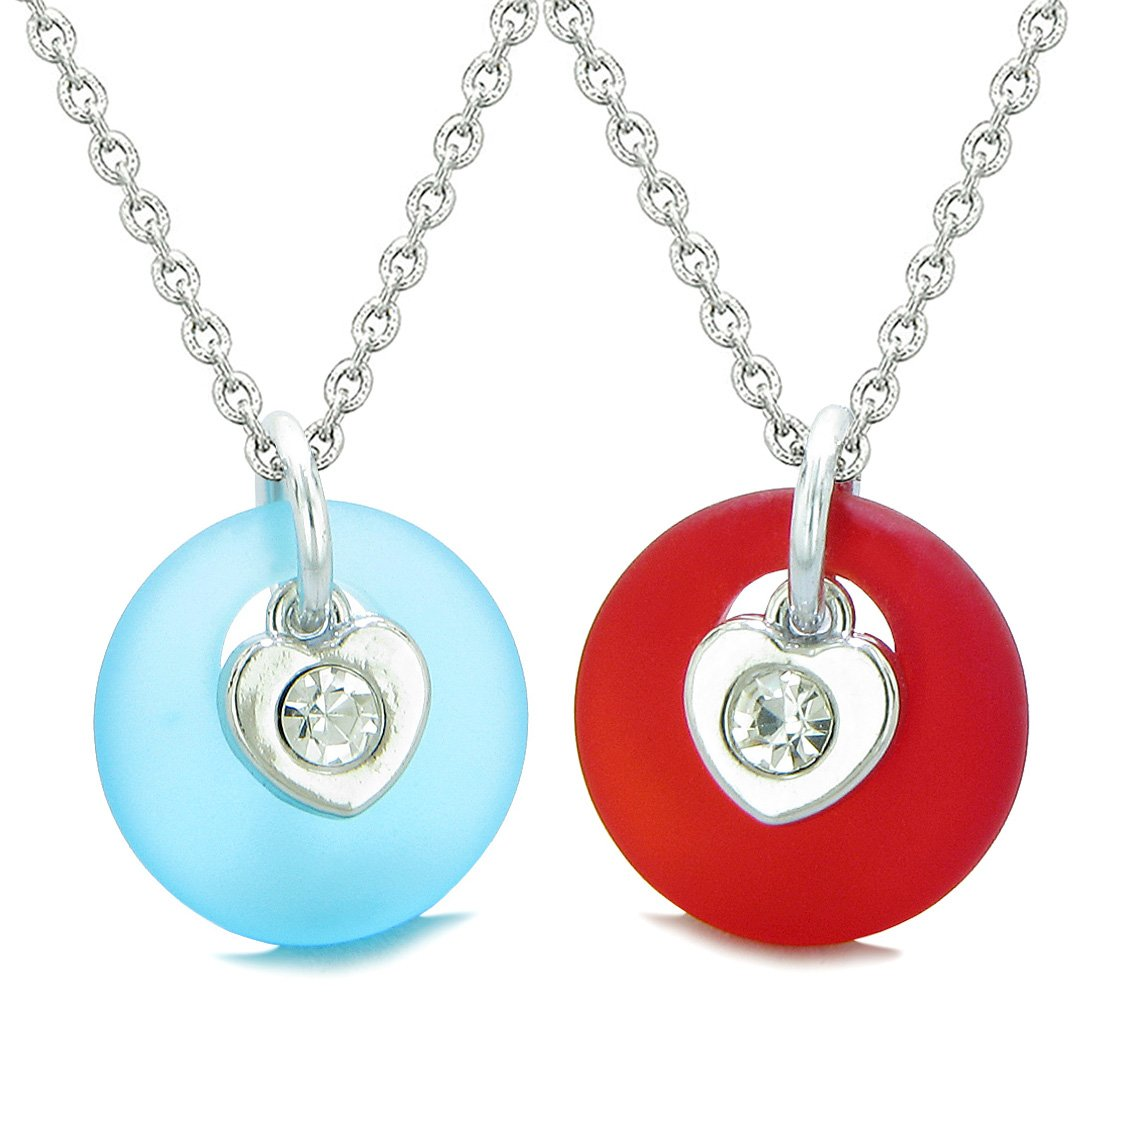 Sea Glass Lucky Donut Crystal Heart Charm Sky Blue Royal Red Love Couples BFF Set Amulet Necklaces